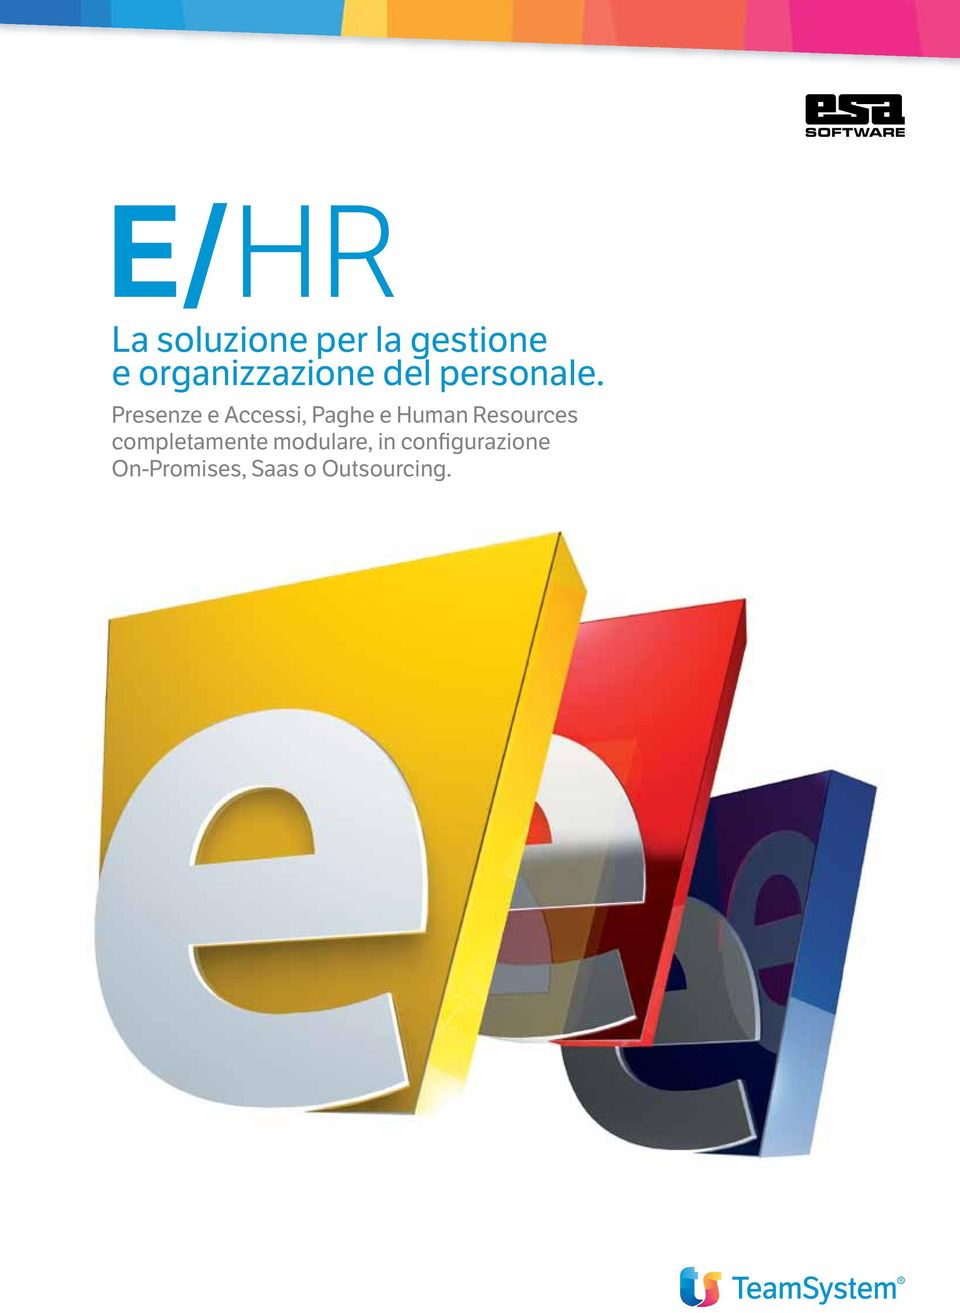 Presenze e Accessi, Paghe e Human Resources